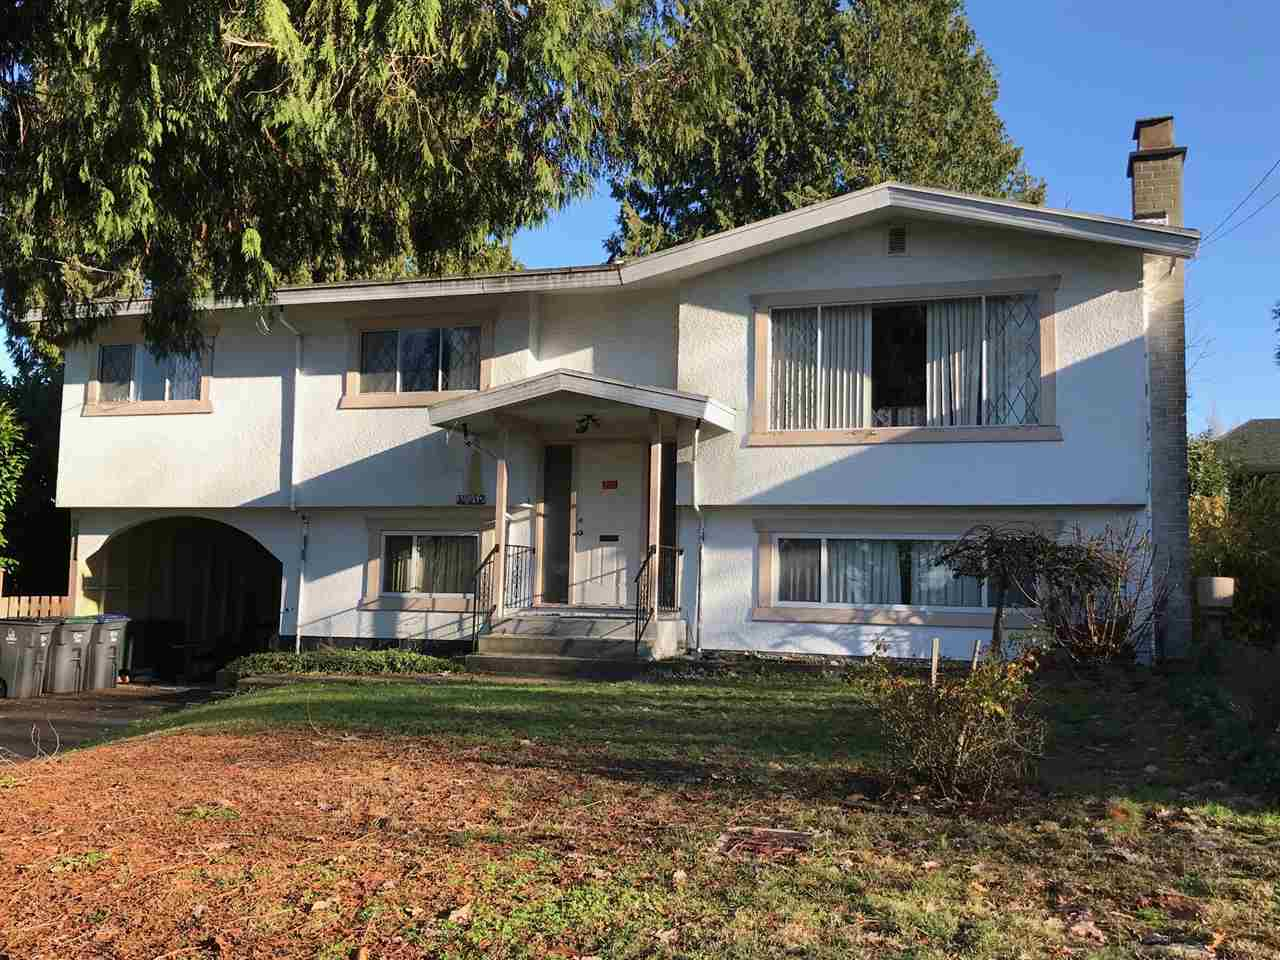 "Photo 2: Photos: 11052 131 Street in Surrey: Whalley House for sale in ""N. Whalley/Bridgeview"" (North Surrey)  : MLS® # R2226525"